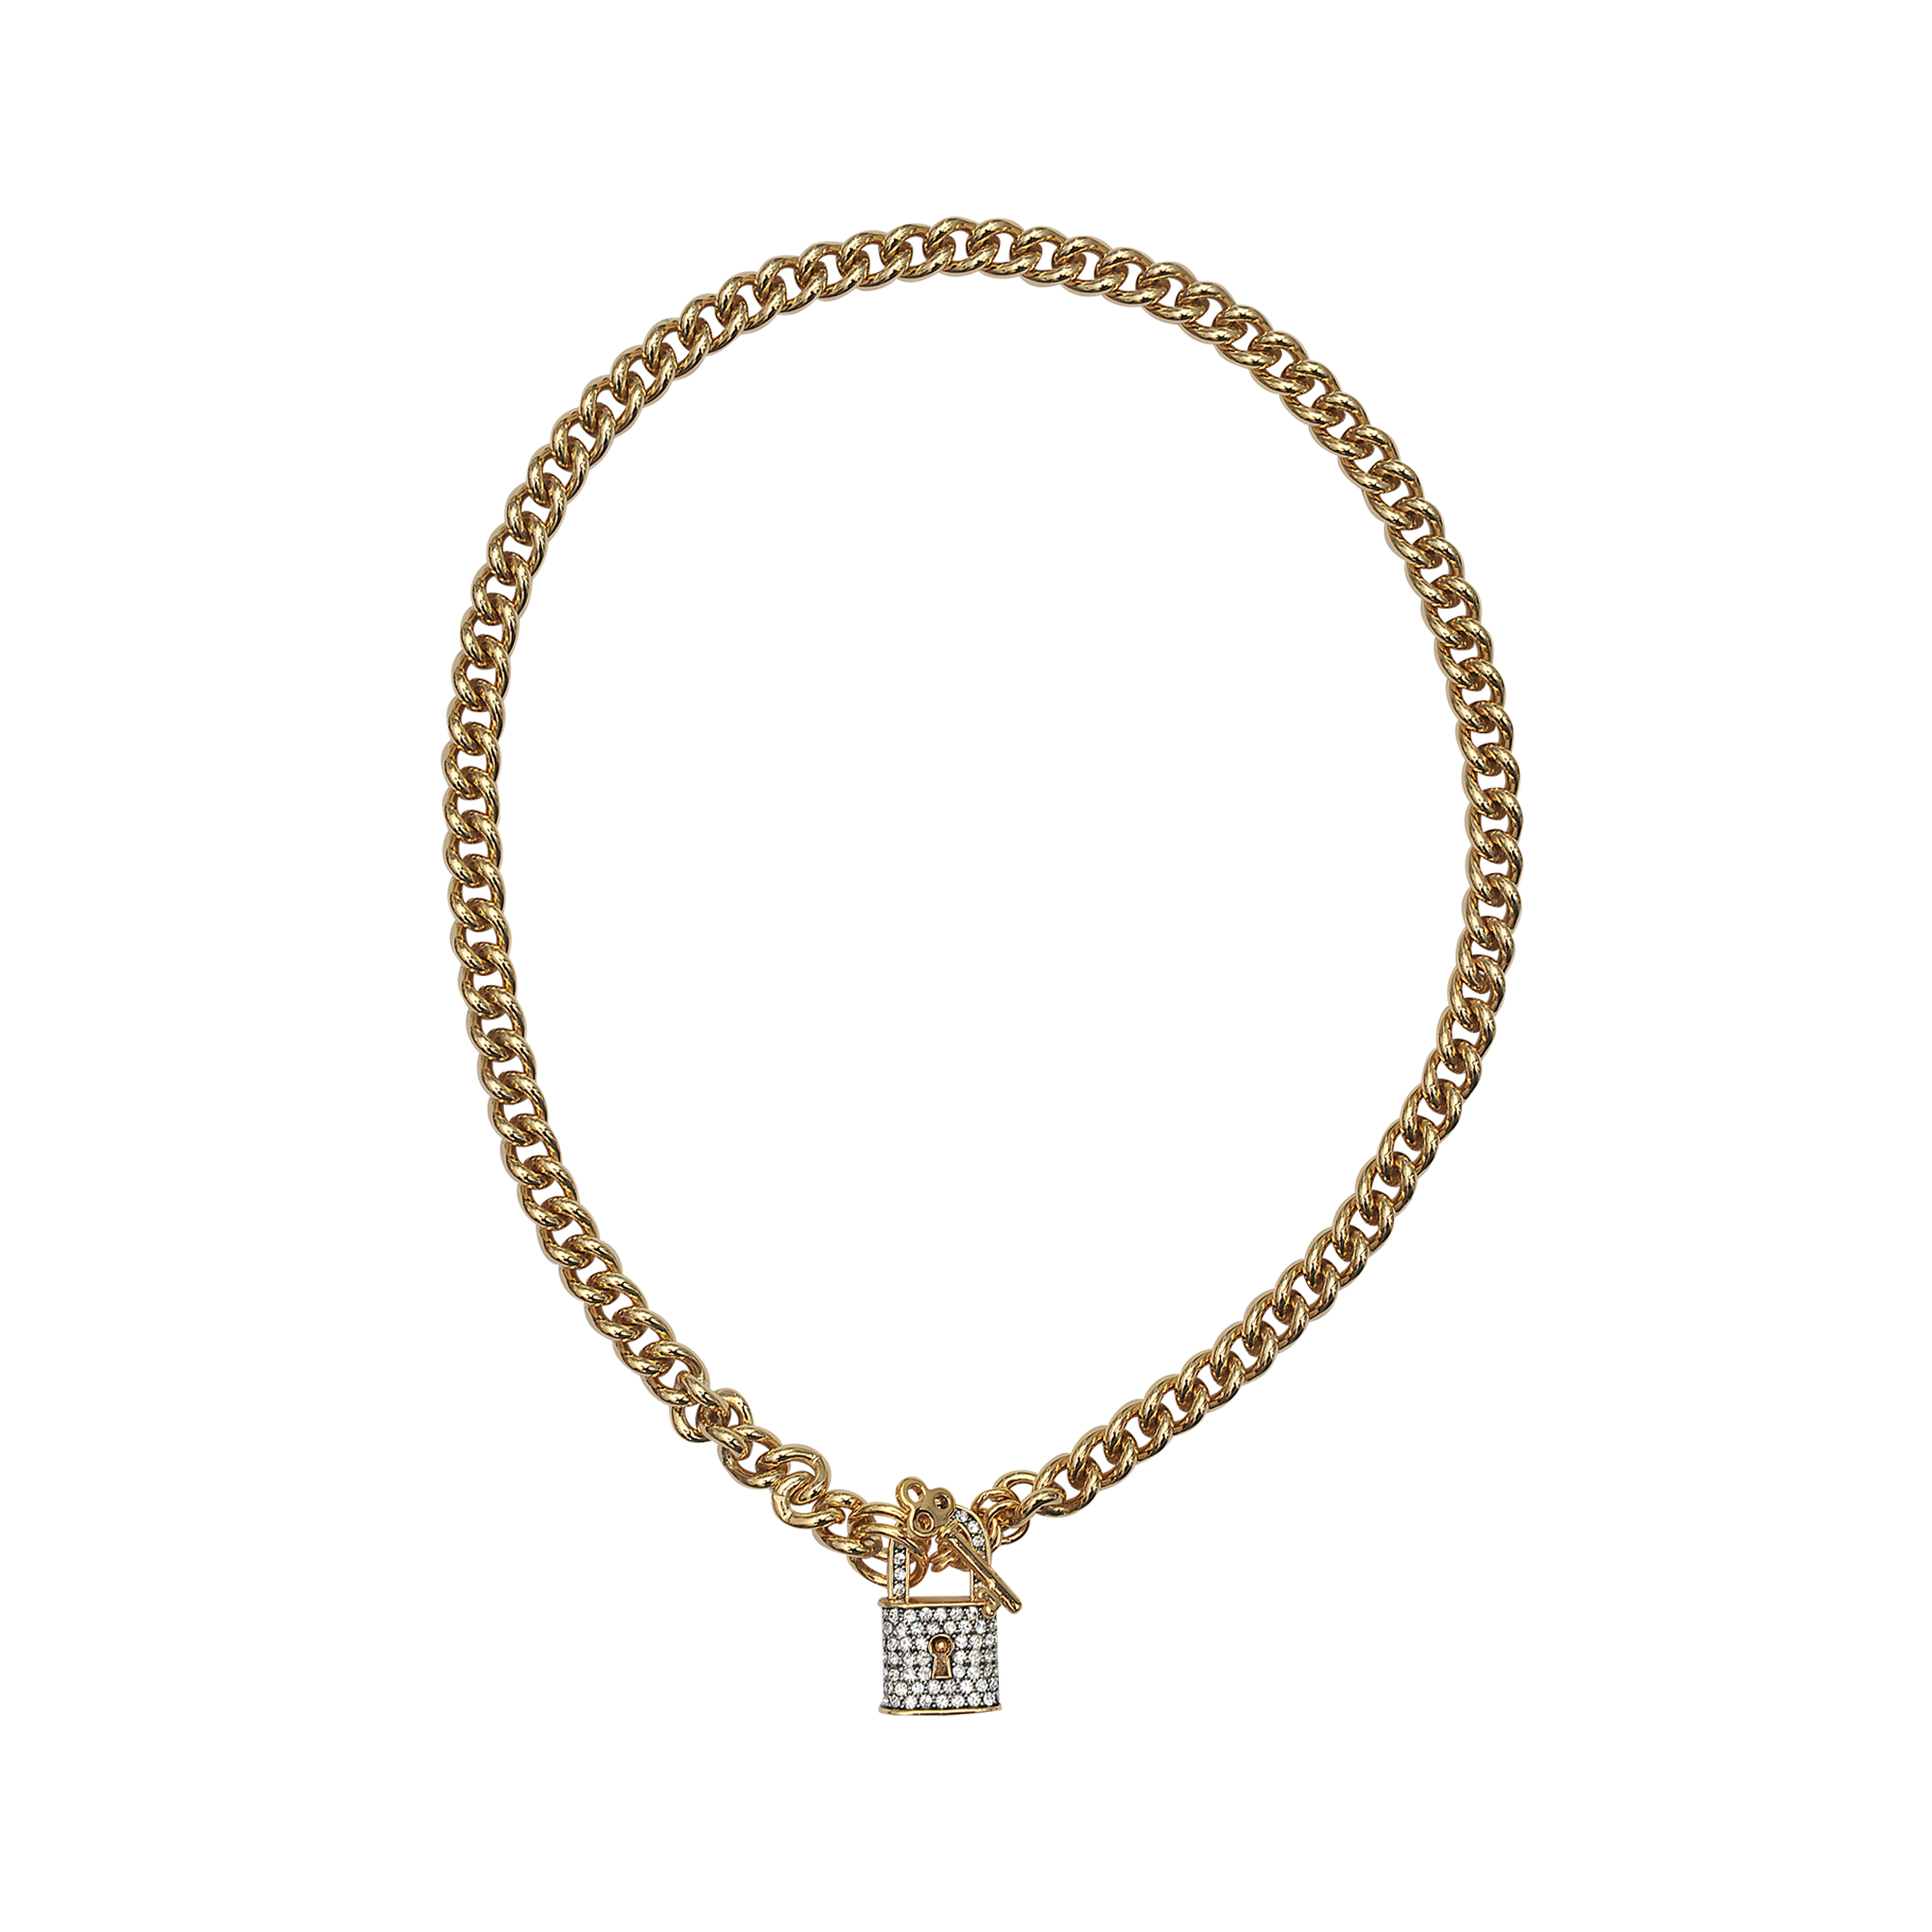 Juicy Couture Pave Lock Necklace in Gold (Metallic)